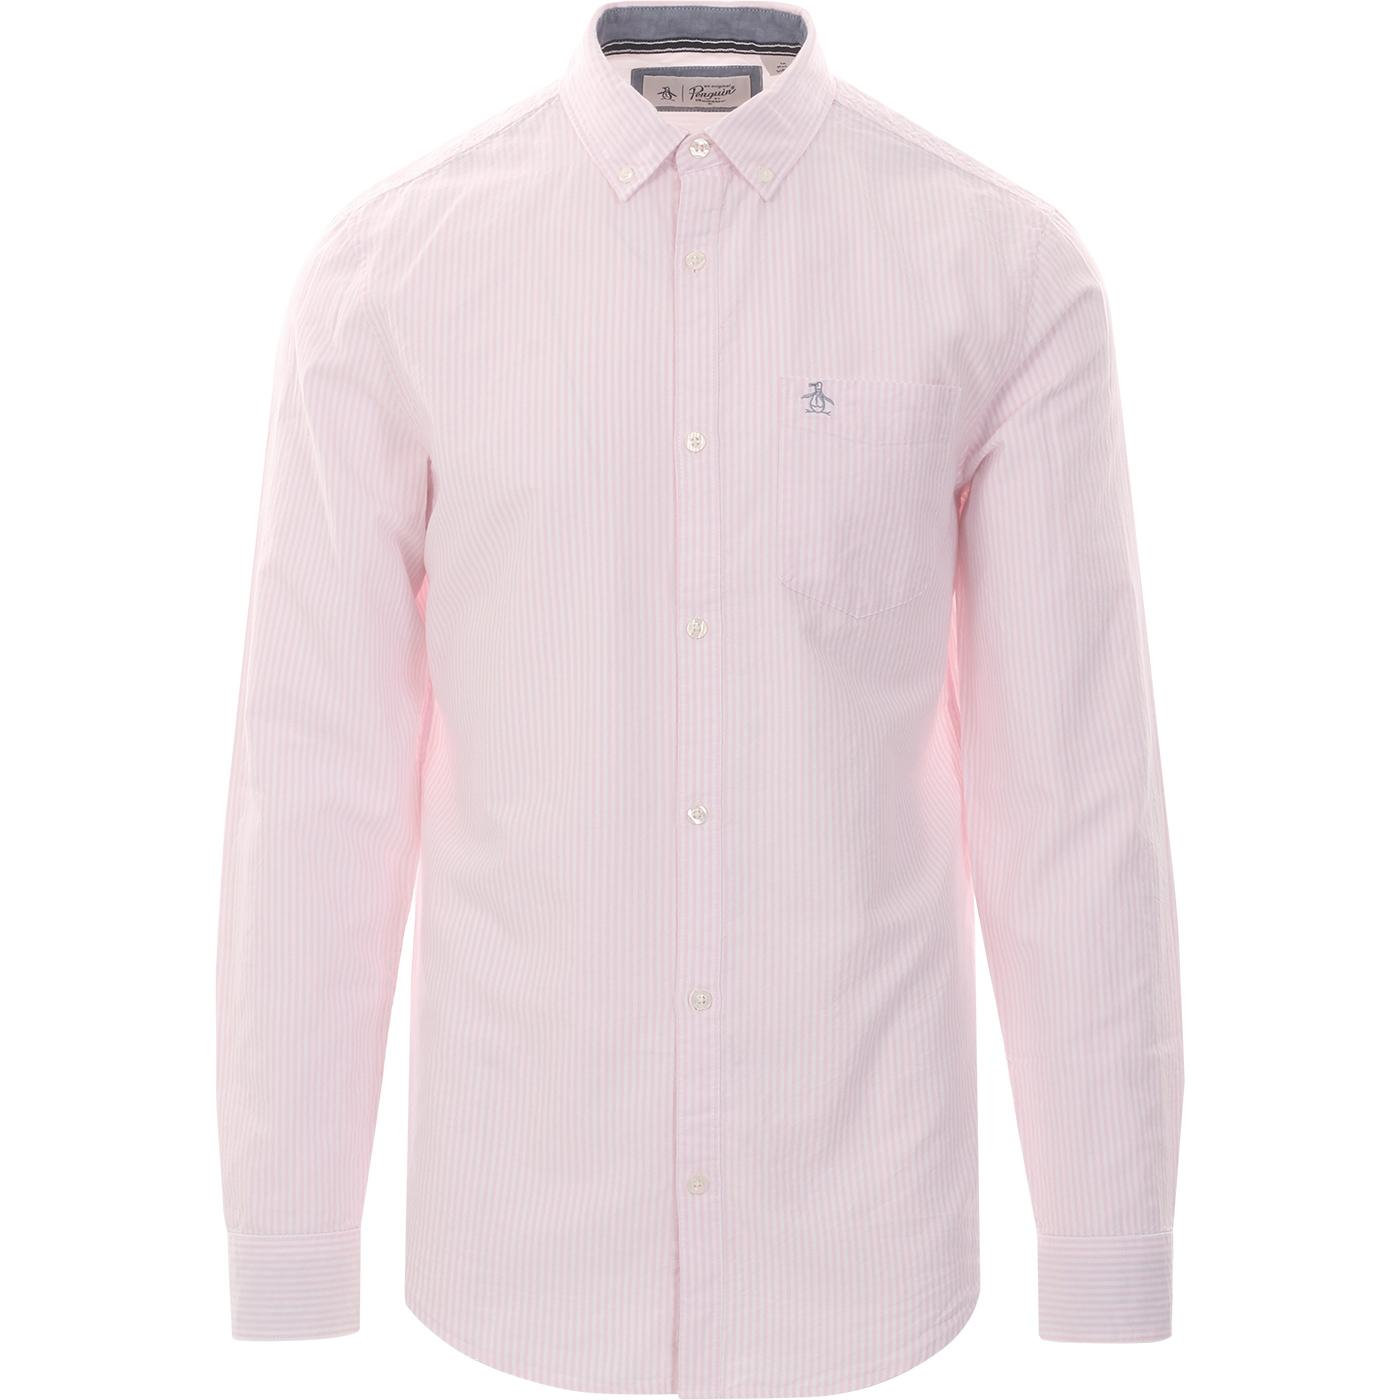 ORIGINAL PENGUIN Mod Stripe Oxford Shirt (Pink)